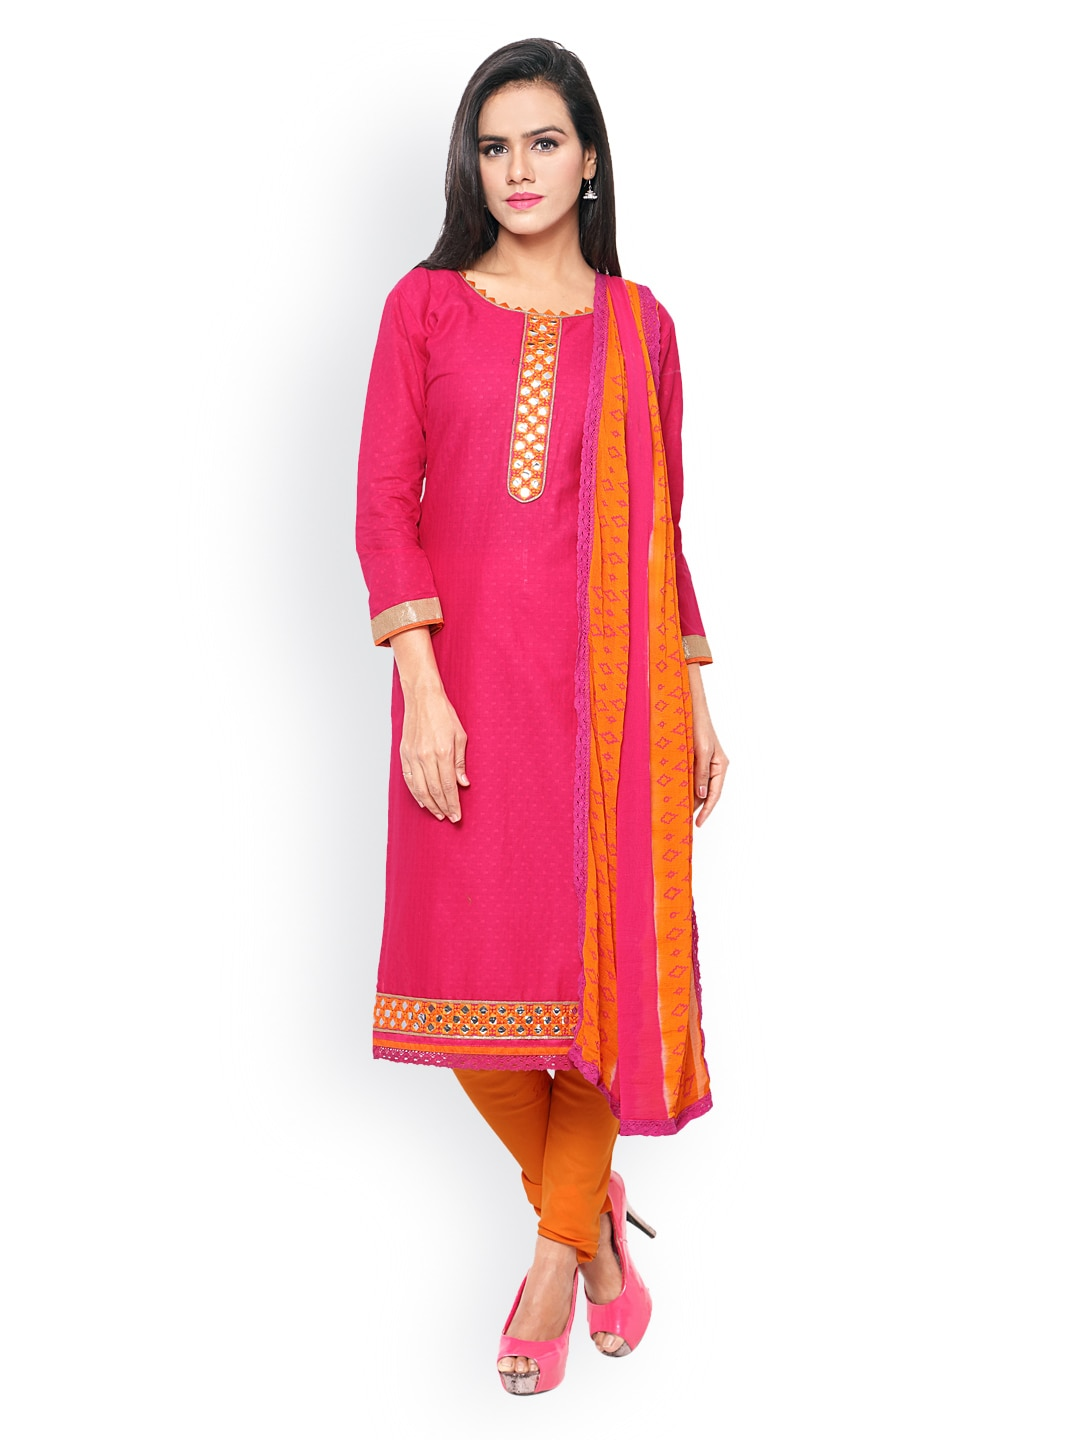 Saree mall Pink & Orange Patterned & Embellished Cambric Cotton Unstitched Dress Material image